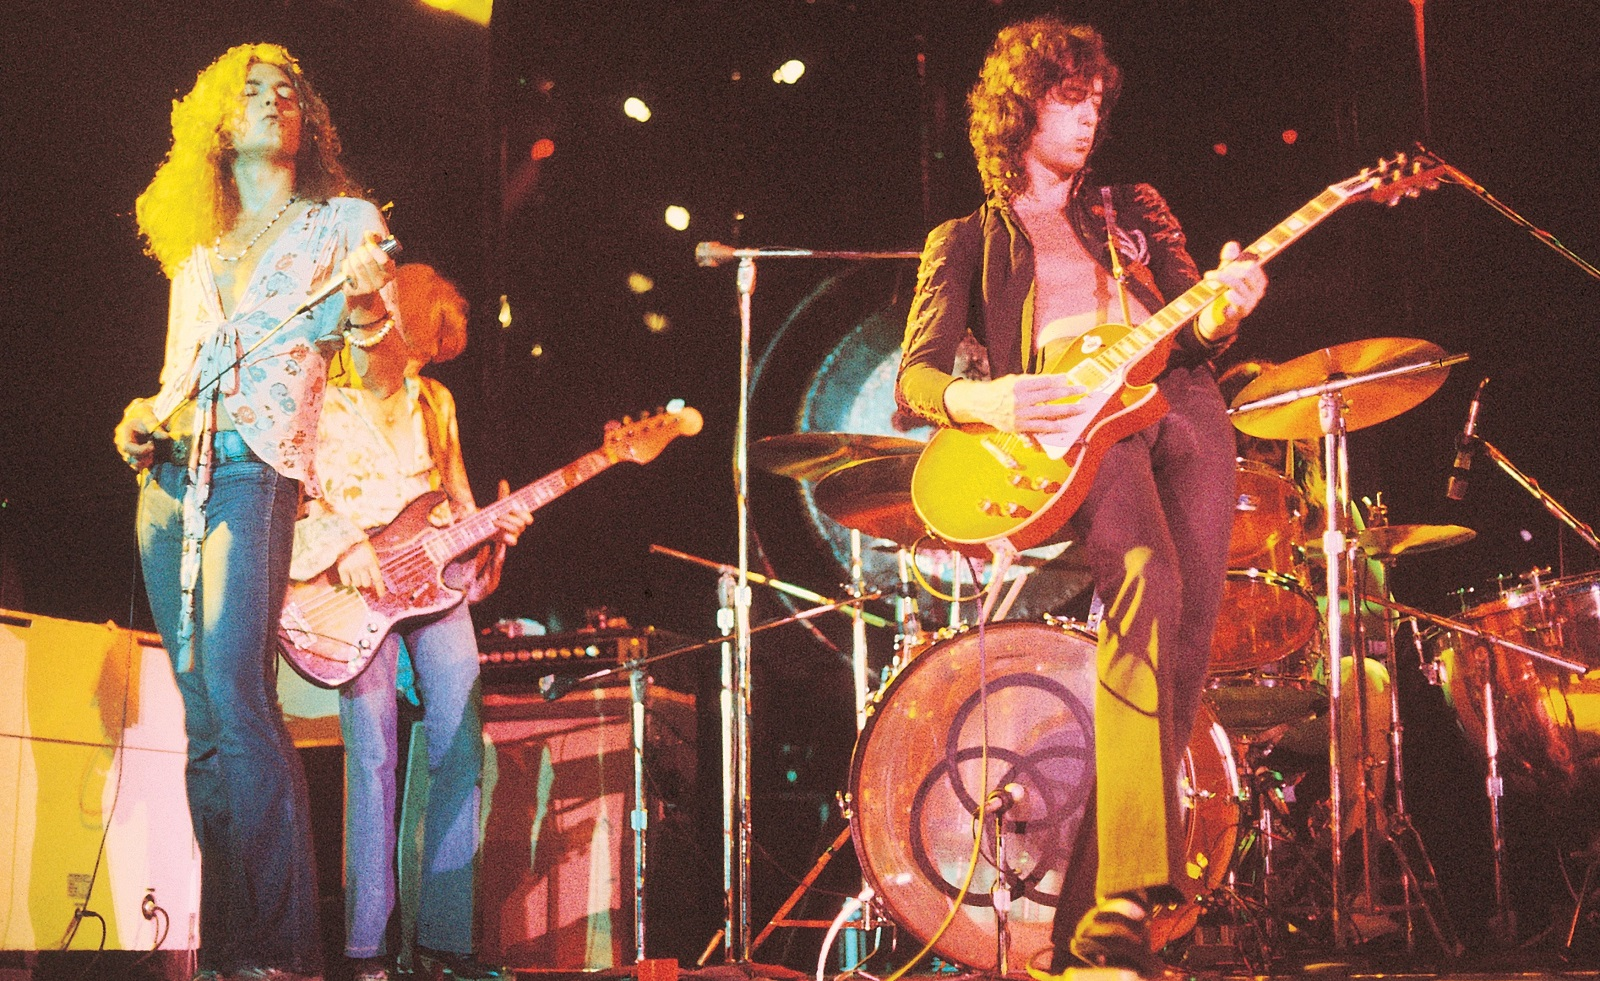 Spirit has sued Led Zeppelin, pictured, over 'Stairway to Heaven.'